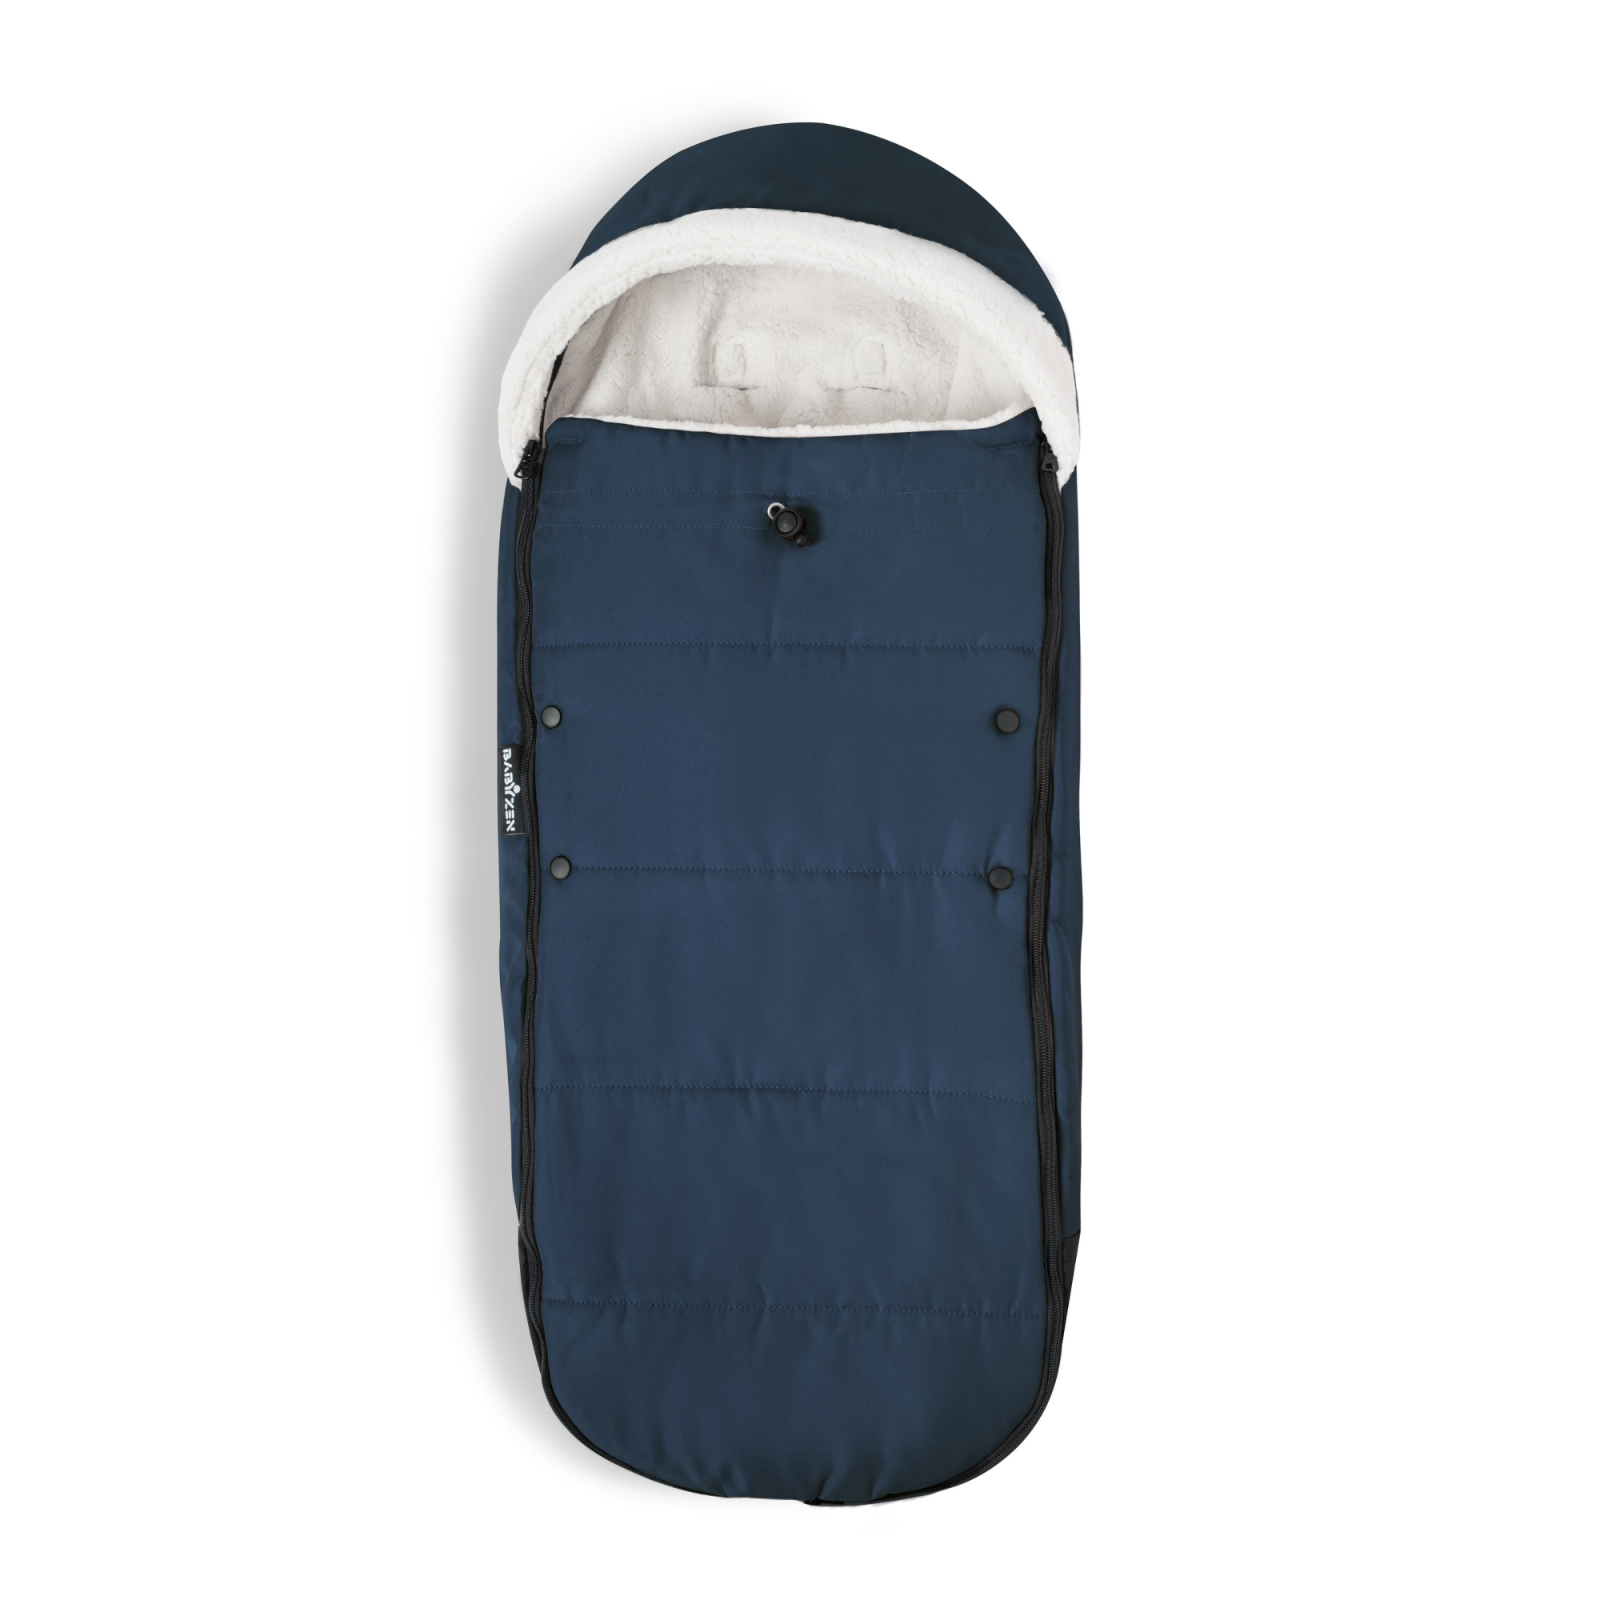 BABYZEN Footmuff - Air France Blue